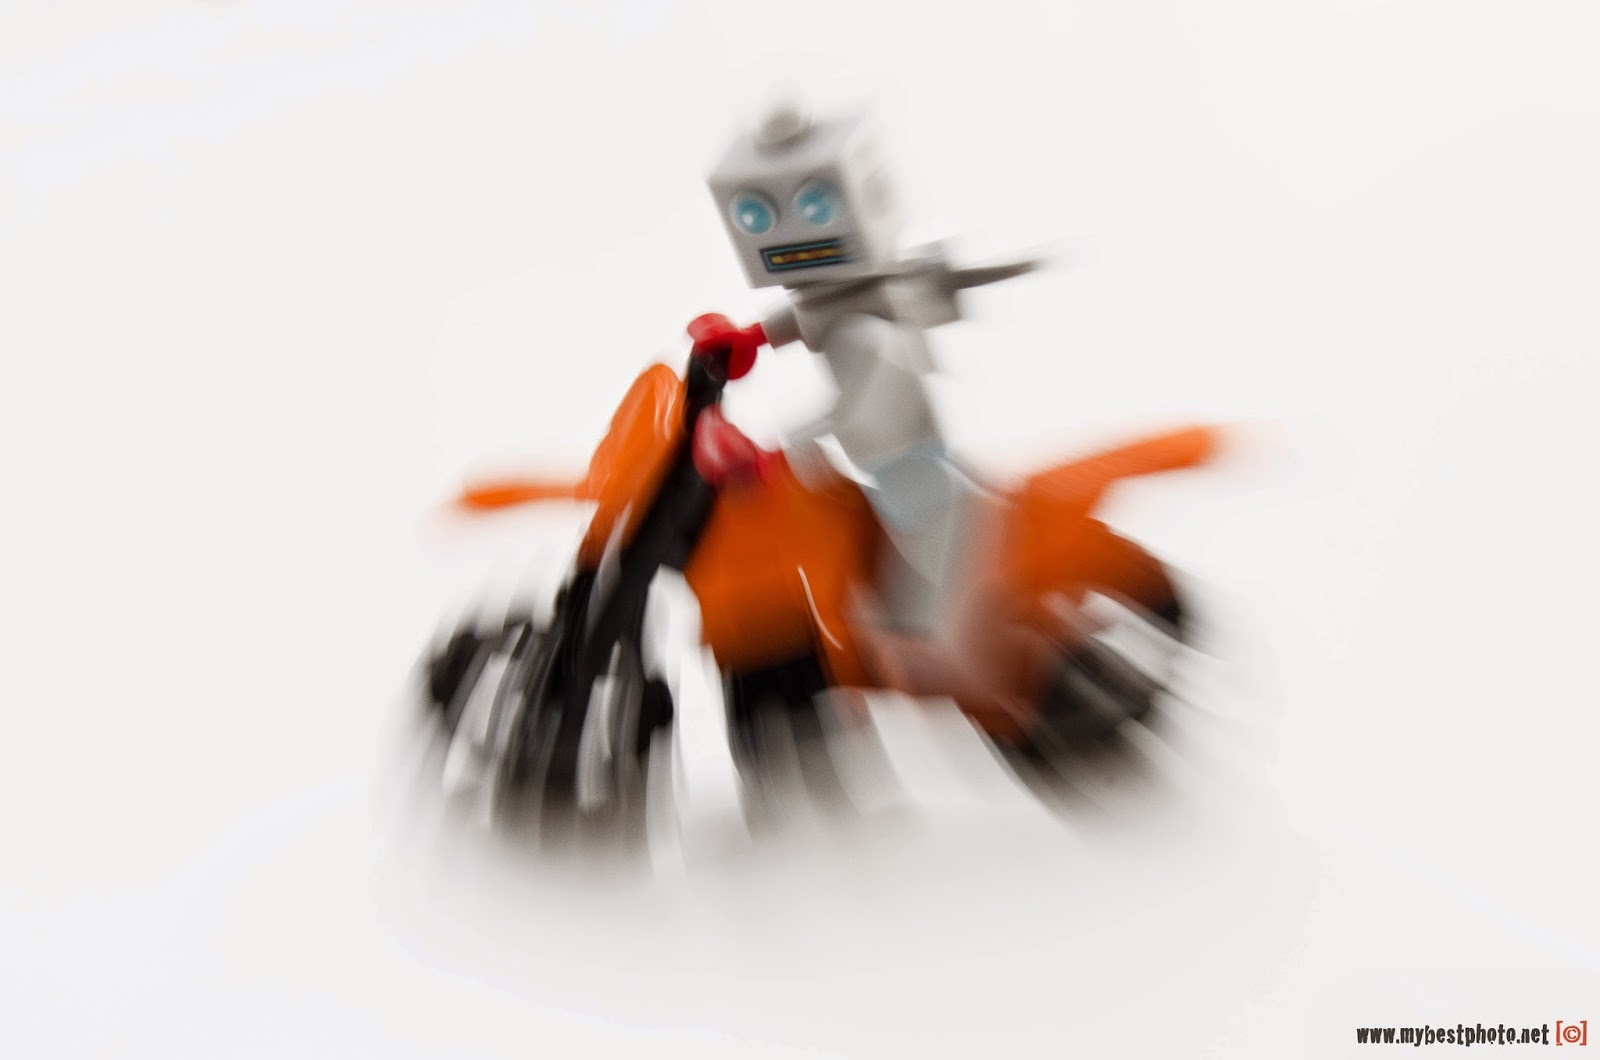 Lego Minifigure Series 6 Clockwork Robot Bike - Wallpaper